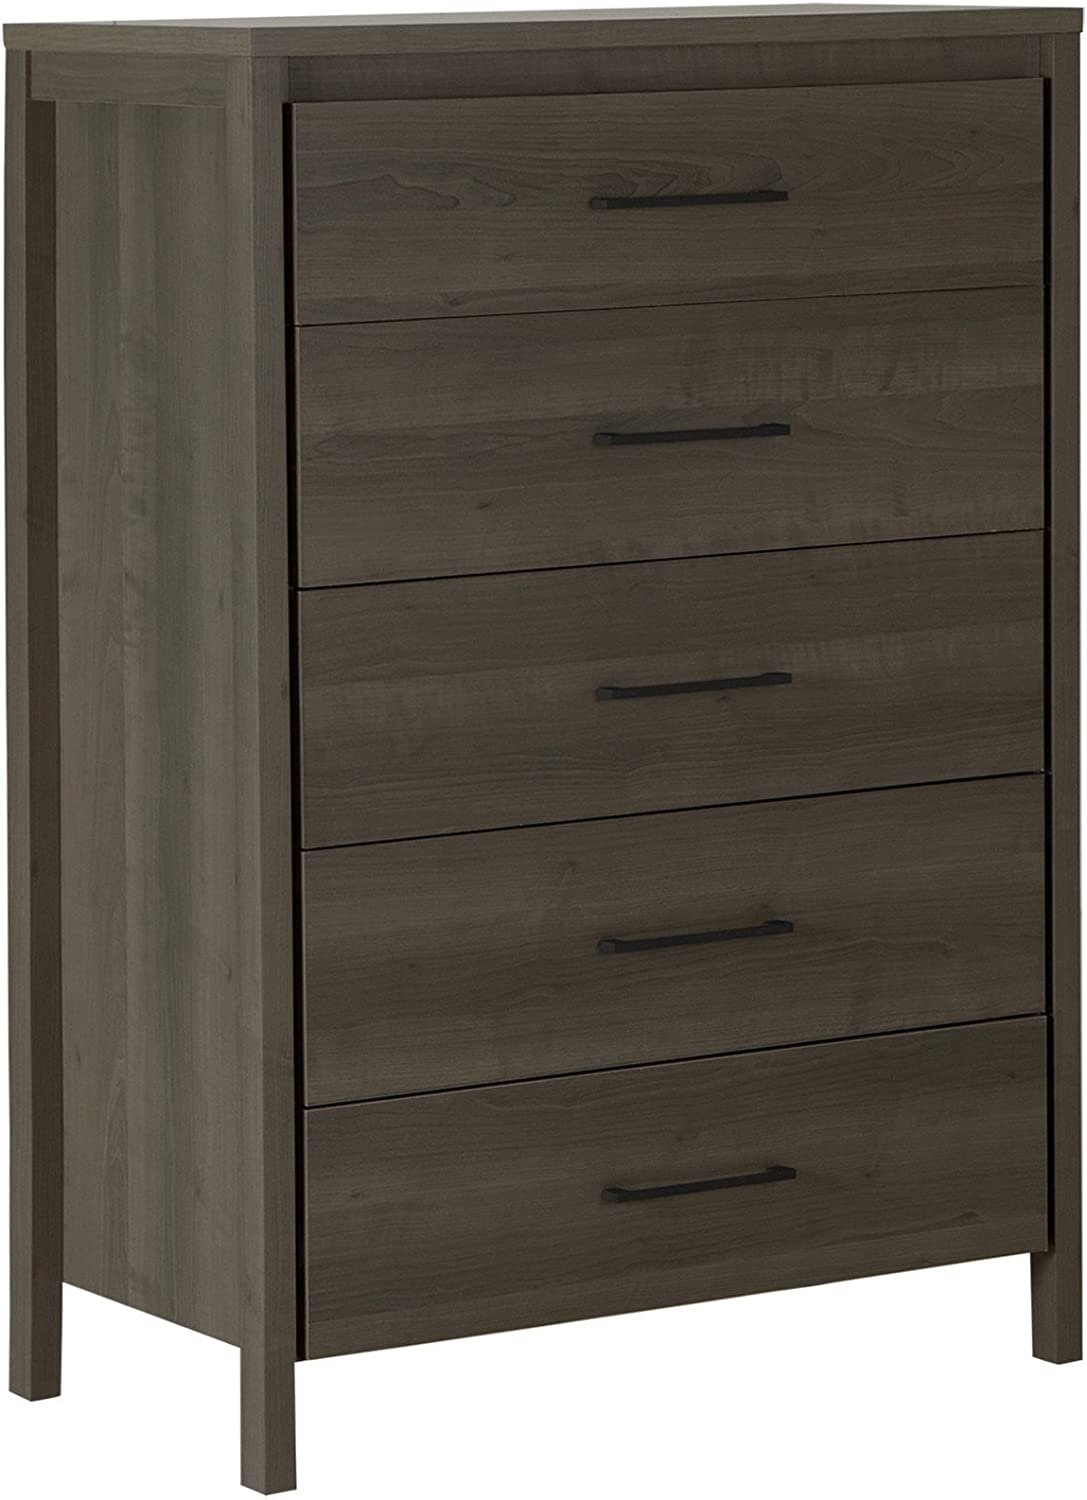 South Shore Furniture Gravity 5 Drawer Chest Gray Maple Amazon